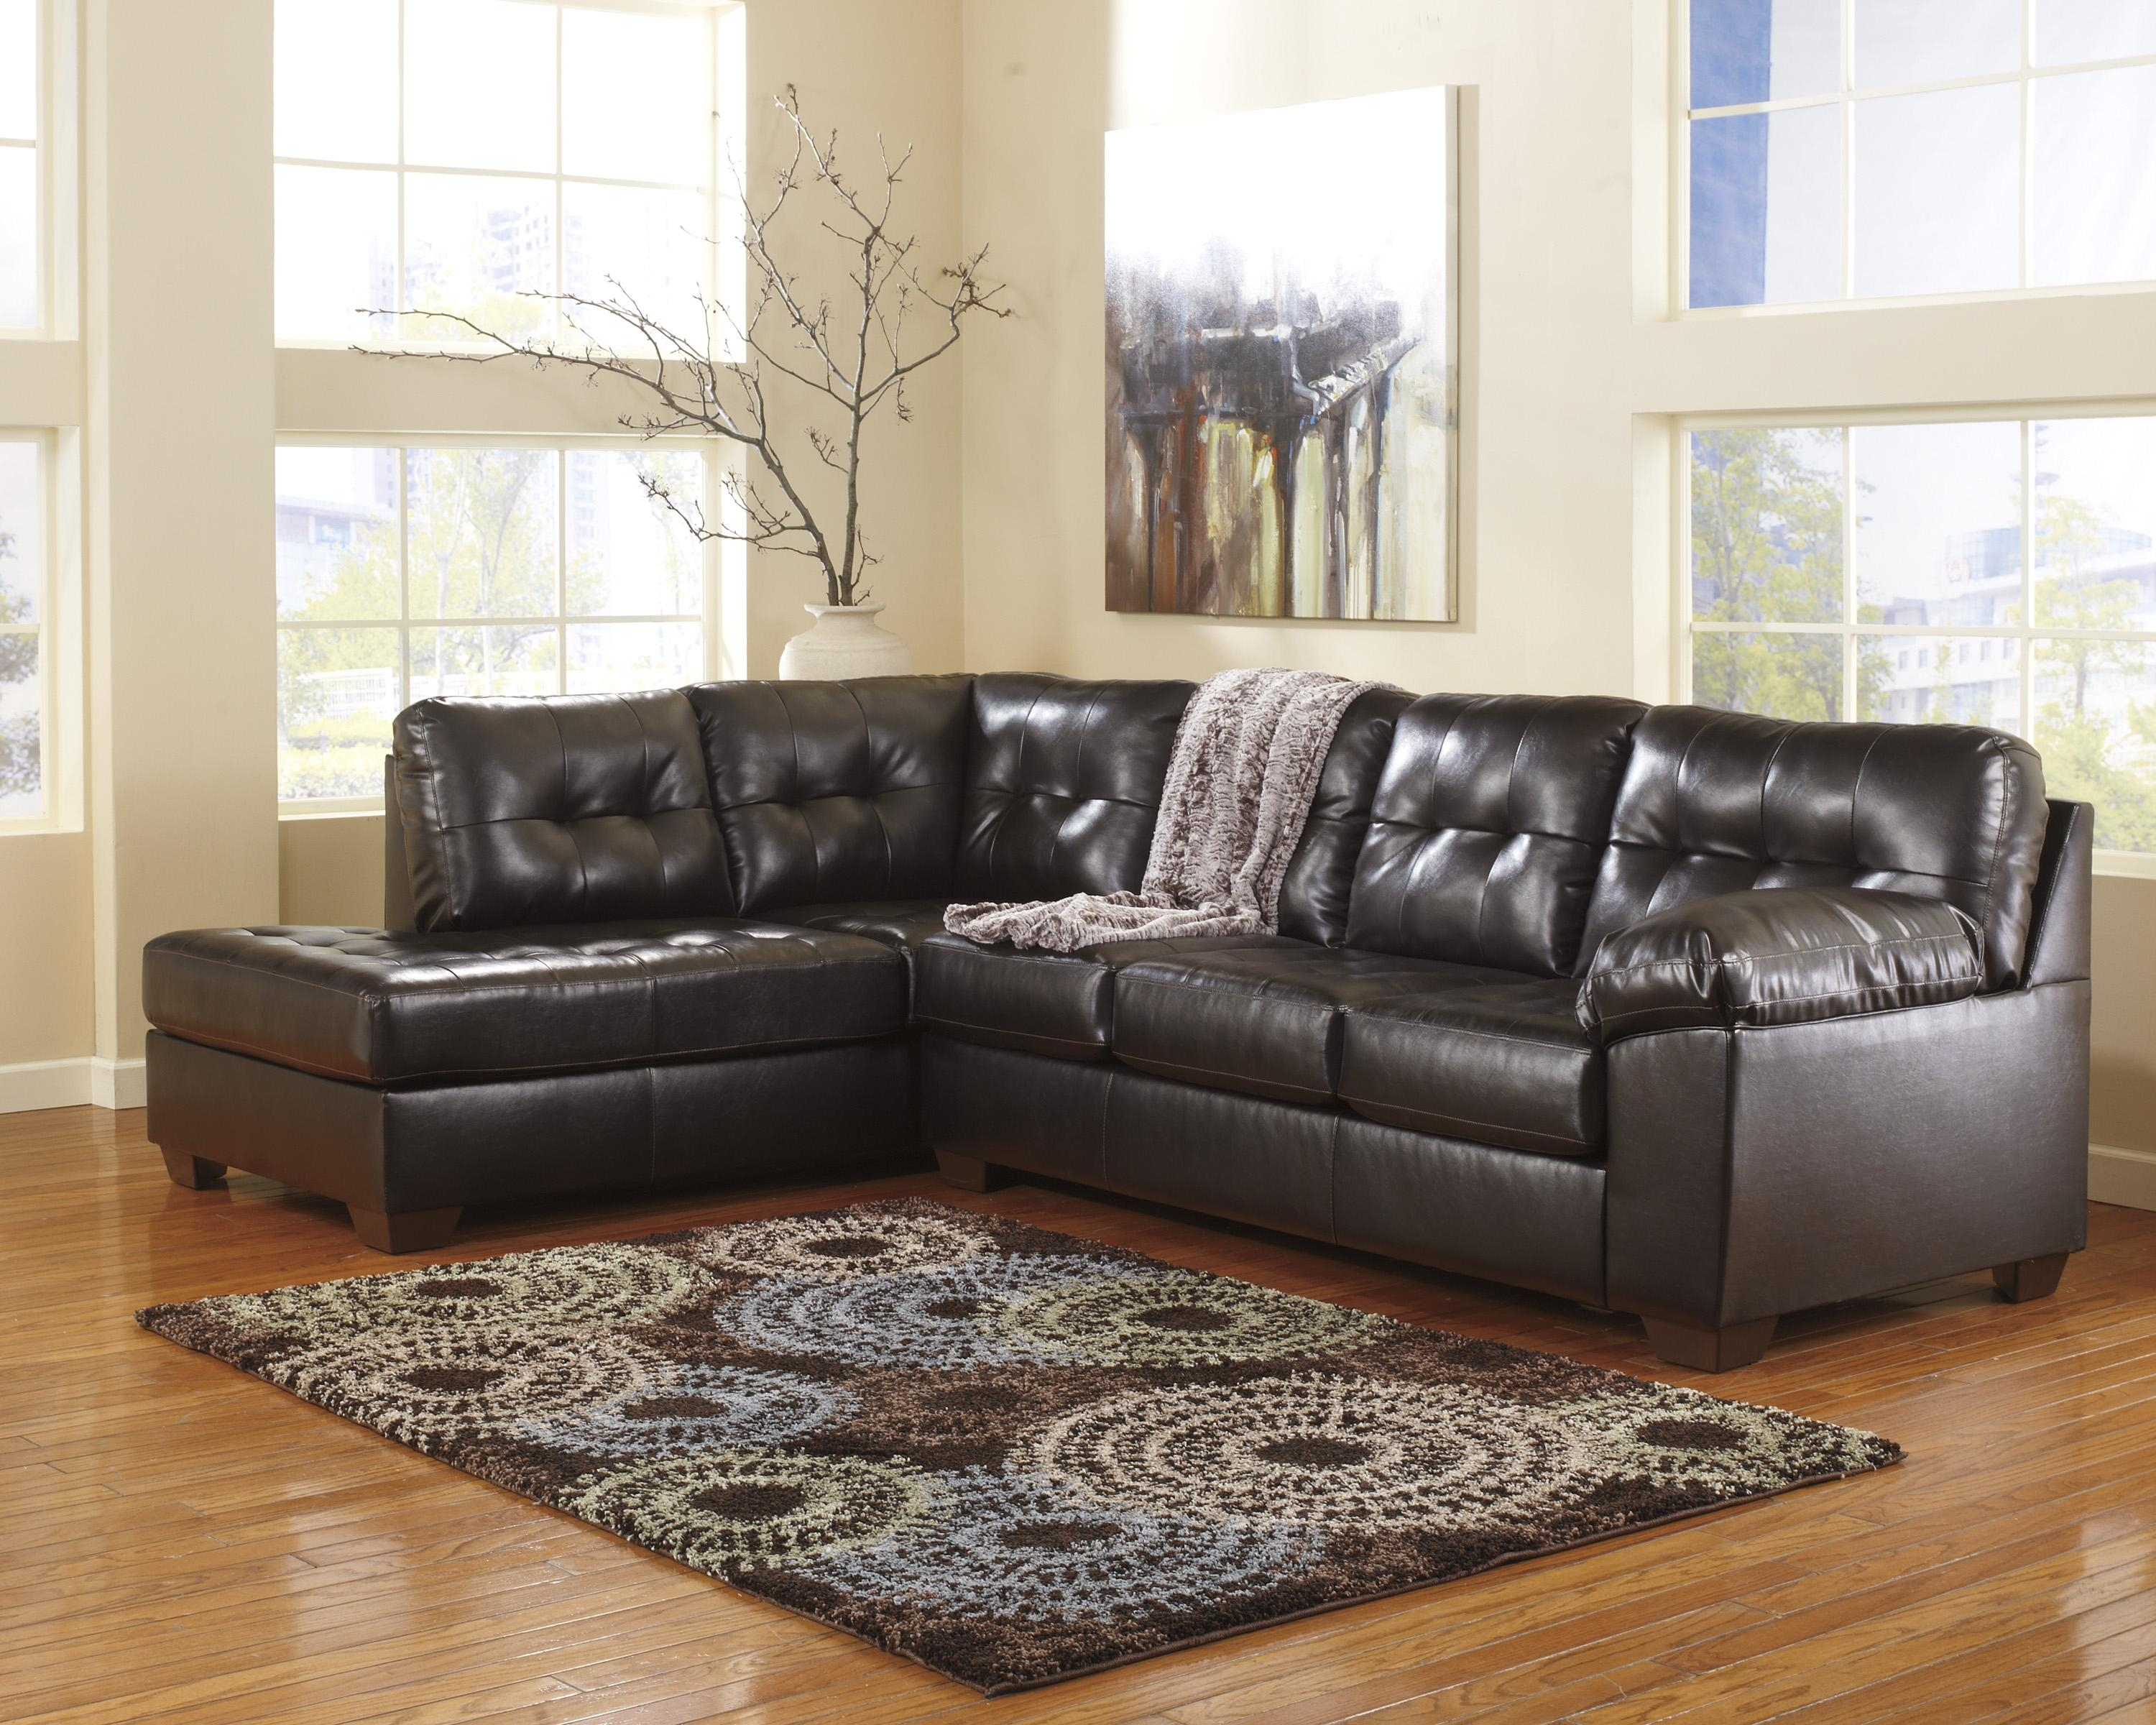 2 Piece Sectional Sofa Ashley | Tehranmix Decoration Regarding Ashley Furniture Leather Sectional Sofas (Image 1 of 20)